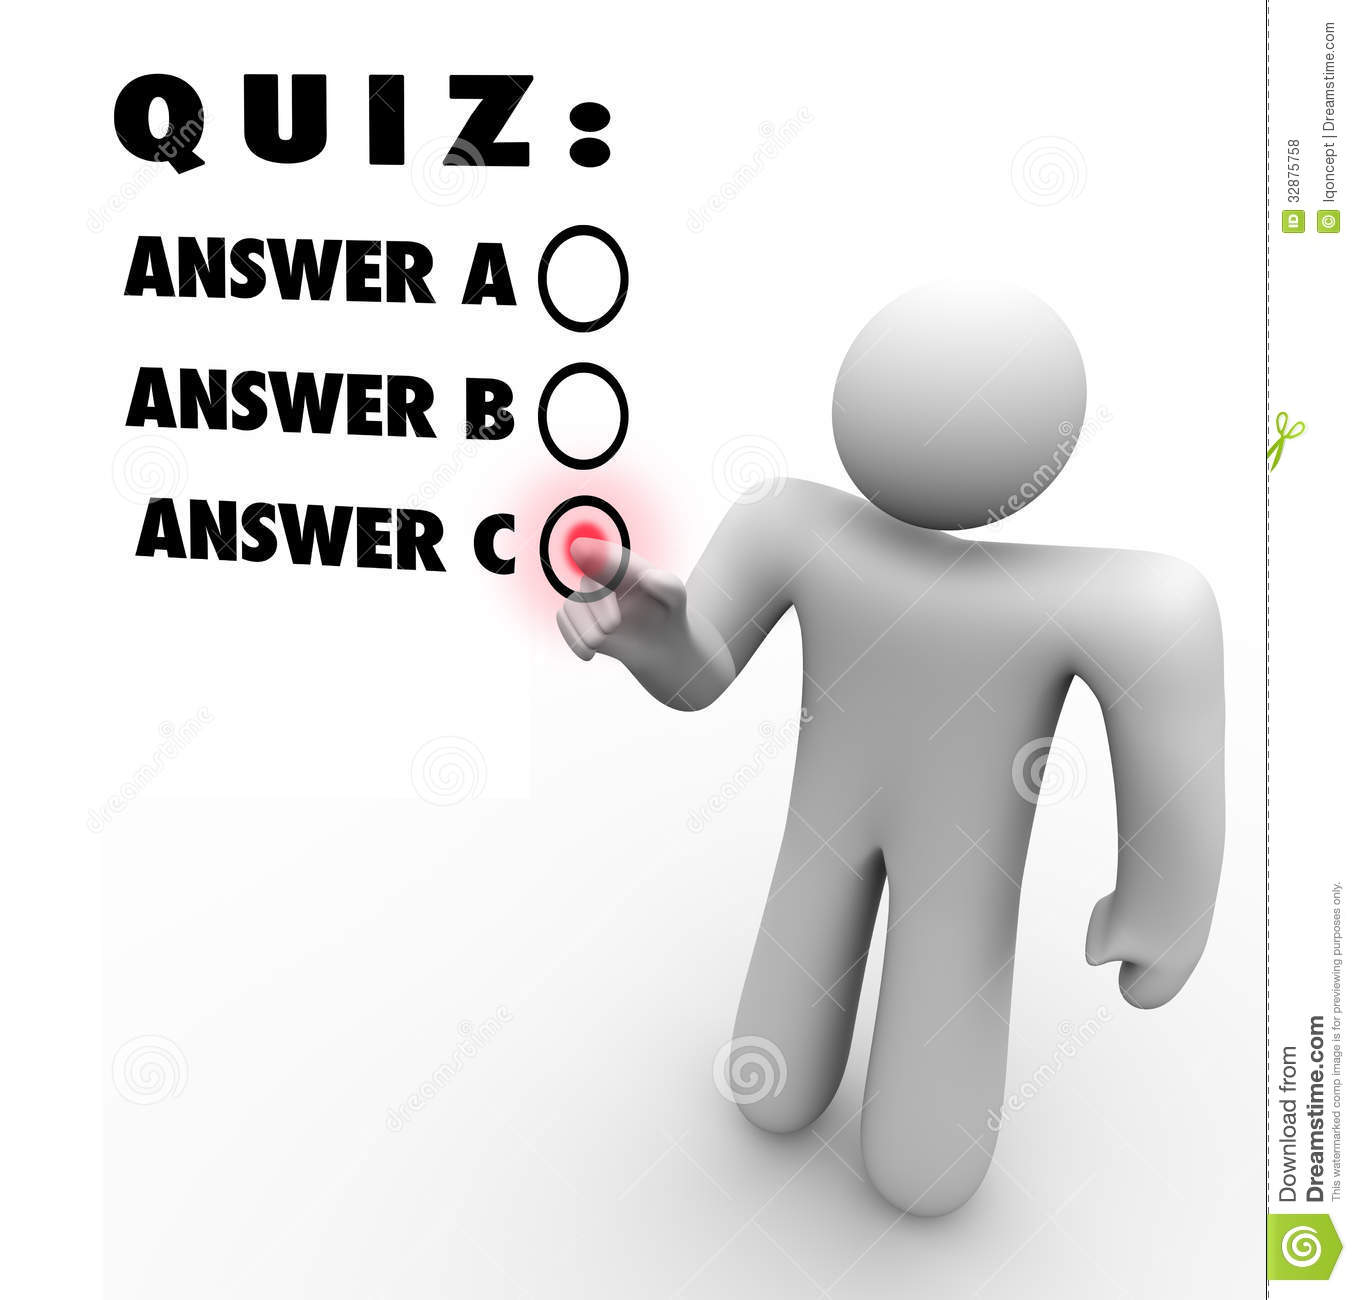 quiz-multiple-choice-choosing-best-answer-test-words-several-answers-person-selection-as-his-32875758.jpg